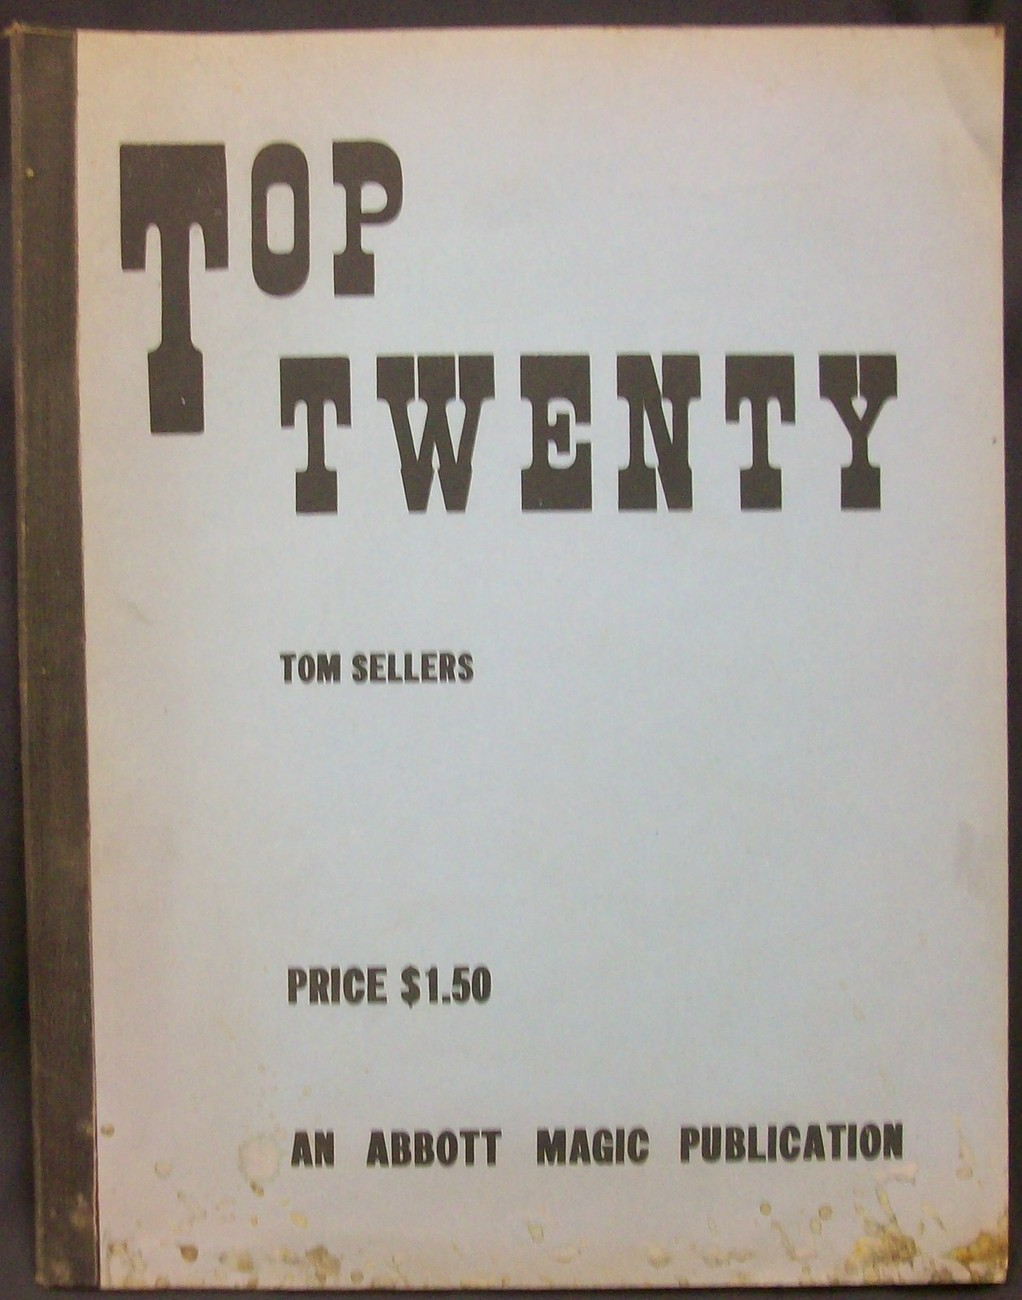 Primary image for Top Twenty, by Sellers Tom